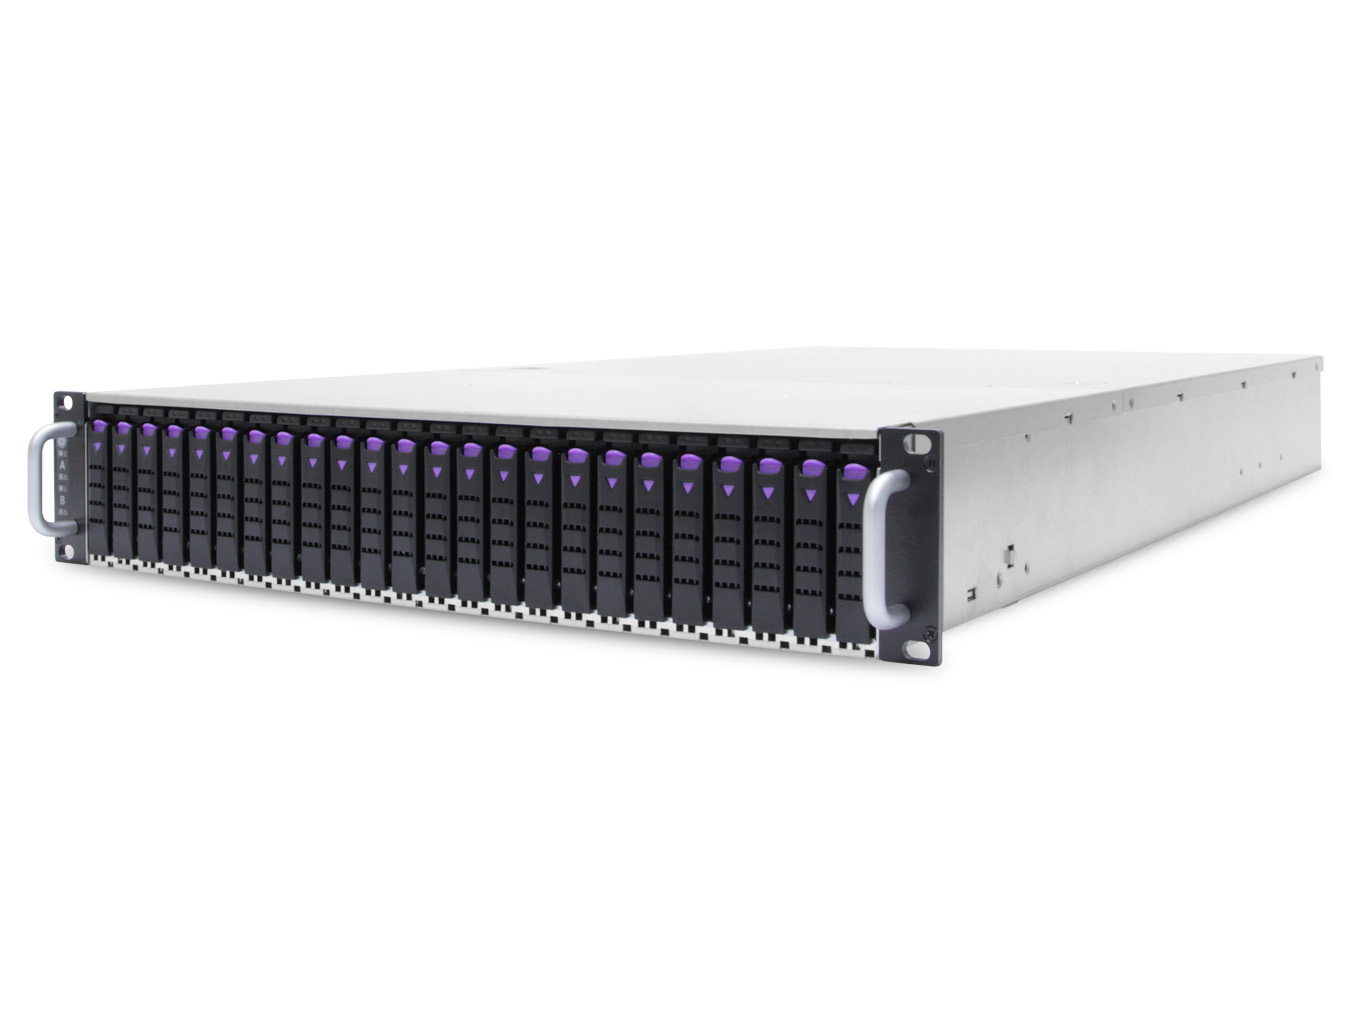 AIC HA202-PH XP1-A202PH01 2U 24-Bay NVMe Storage Server